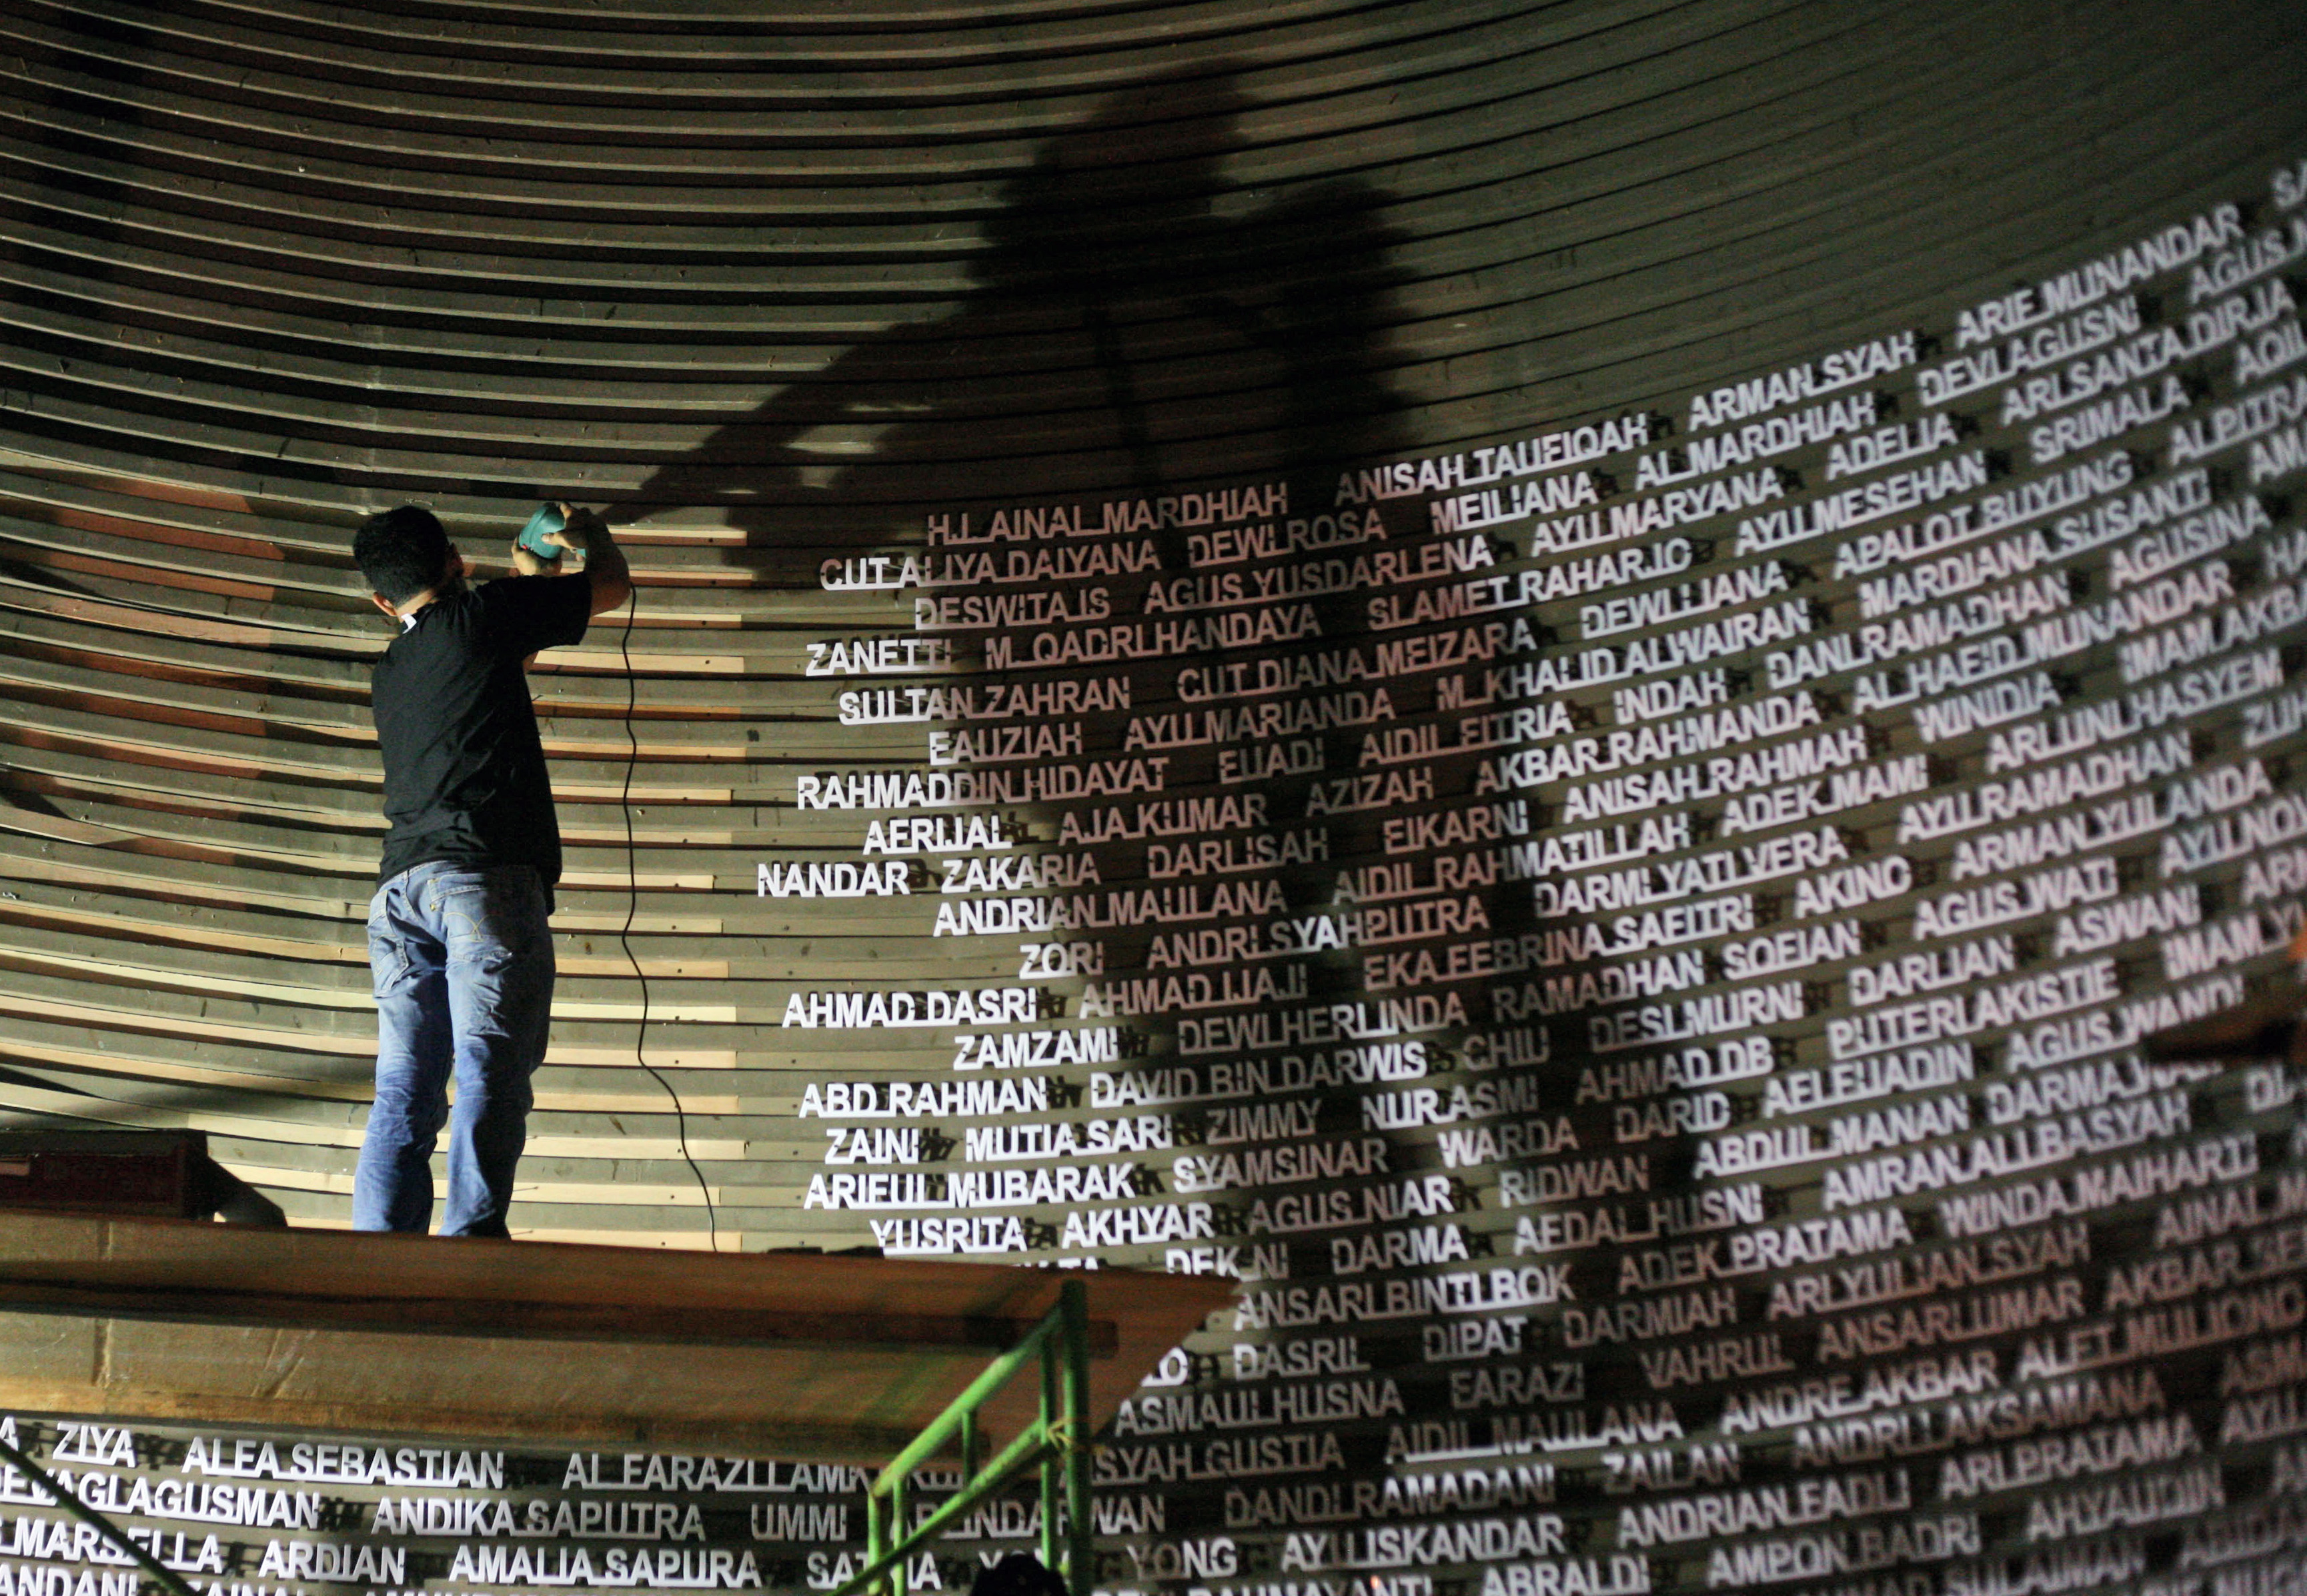 A worker installs the names of the victims of the 2004 Indian Ocean tsunami on the wall of the Tsunami Museum ahead of the 10th anniversary of the killer waves in Banda Aceh, Aceh province, Indonesia, Thursday, Dec. 4, 2014.